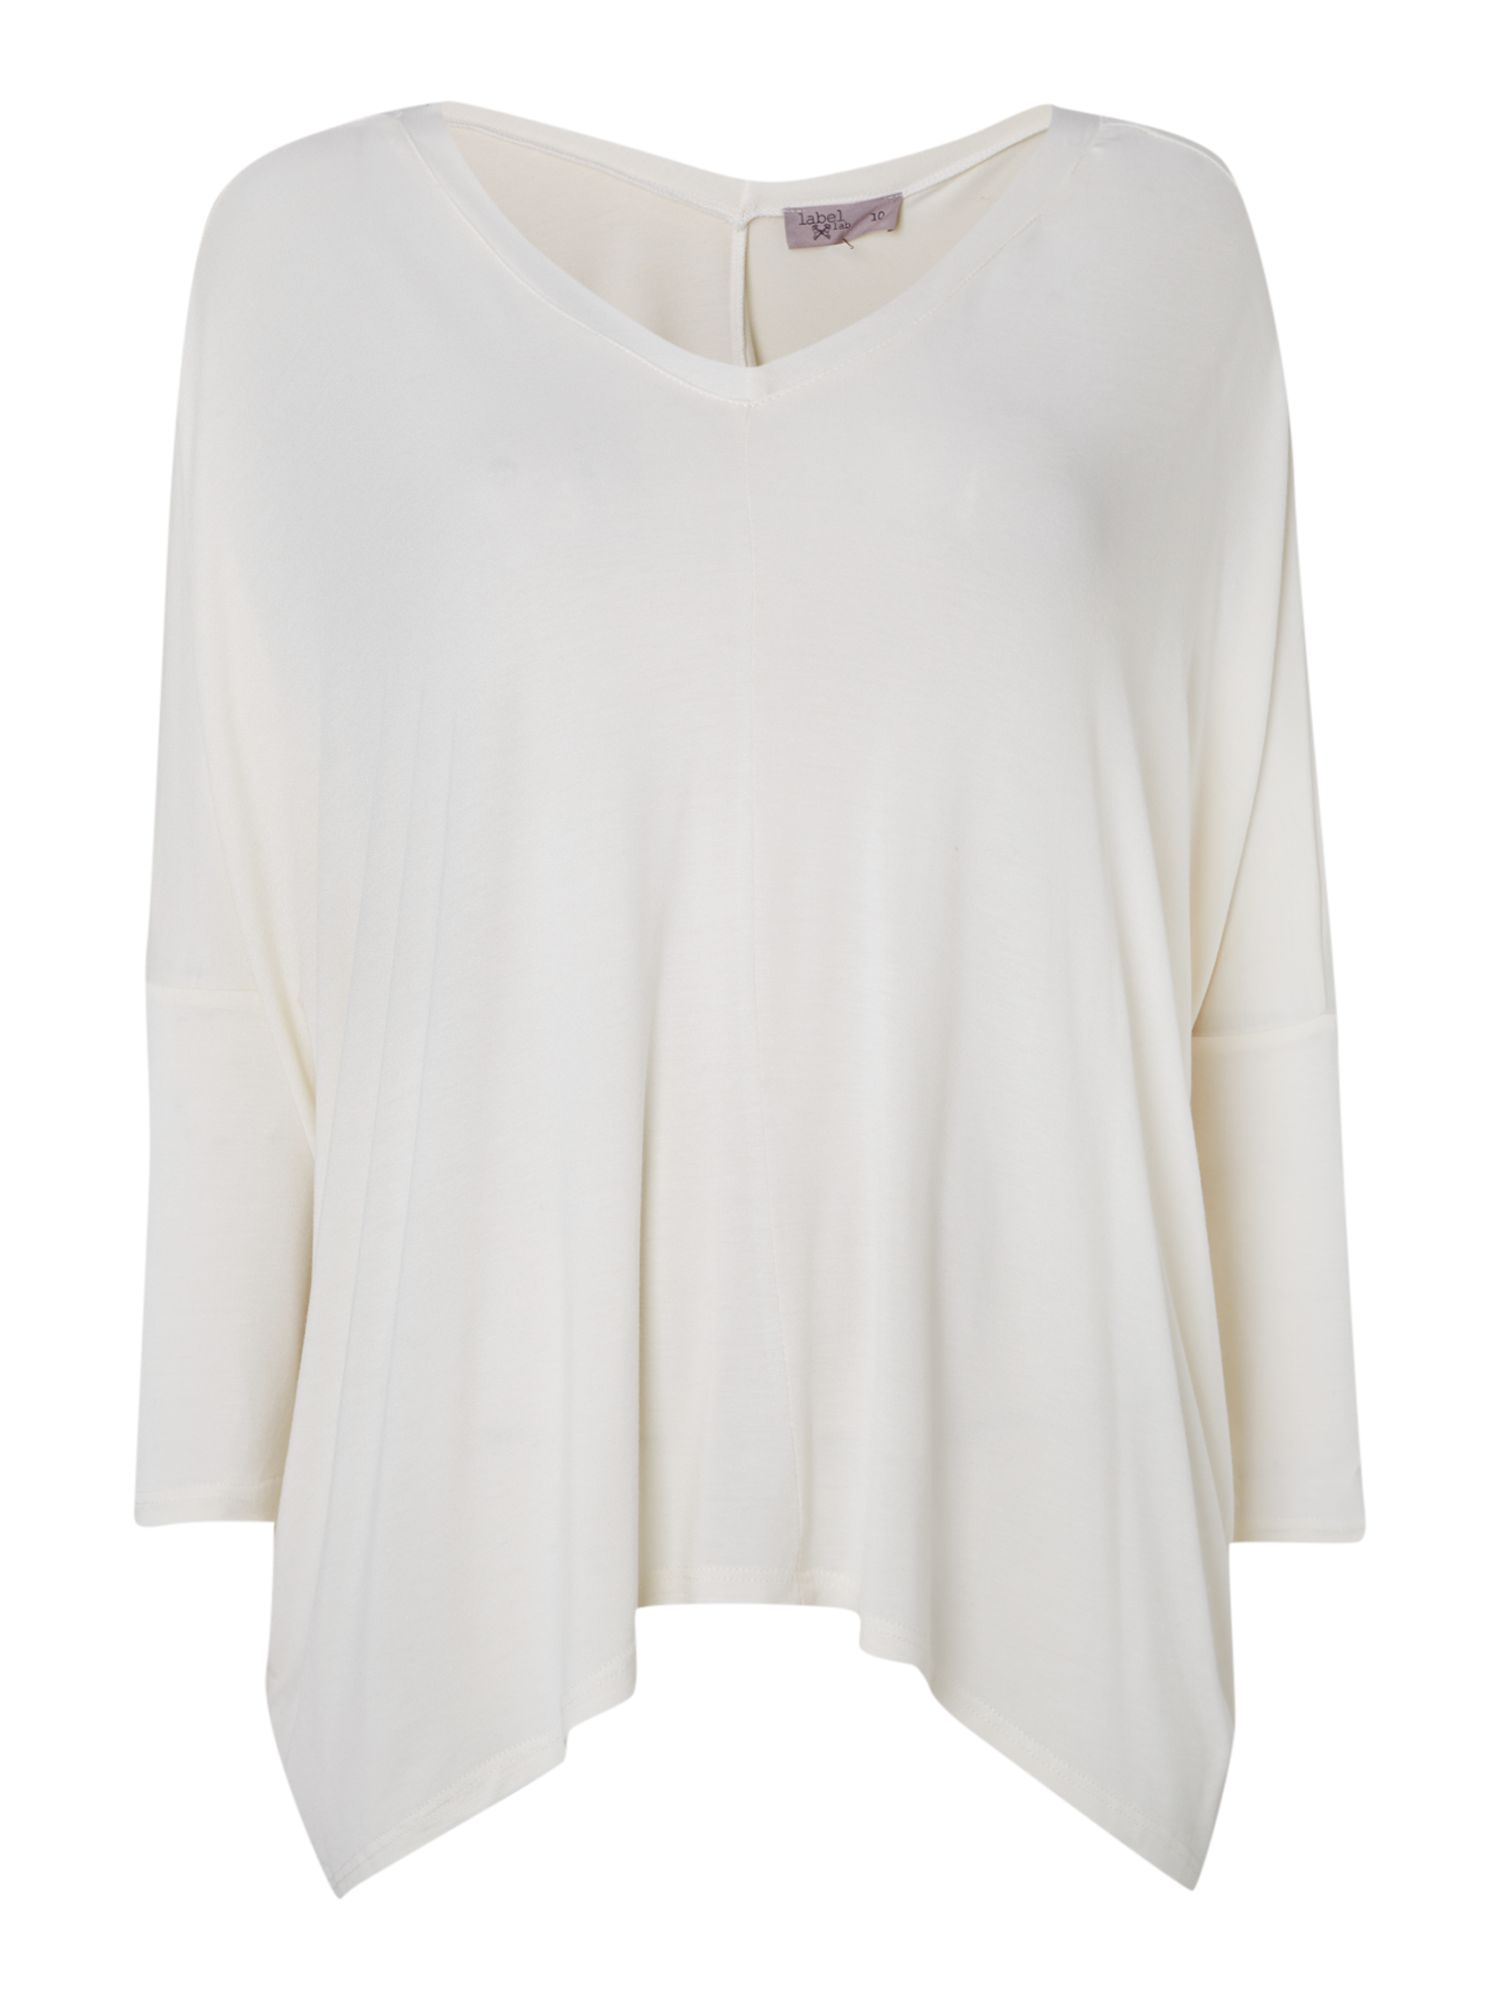 Vee front and back chiffon mix top